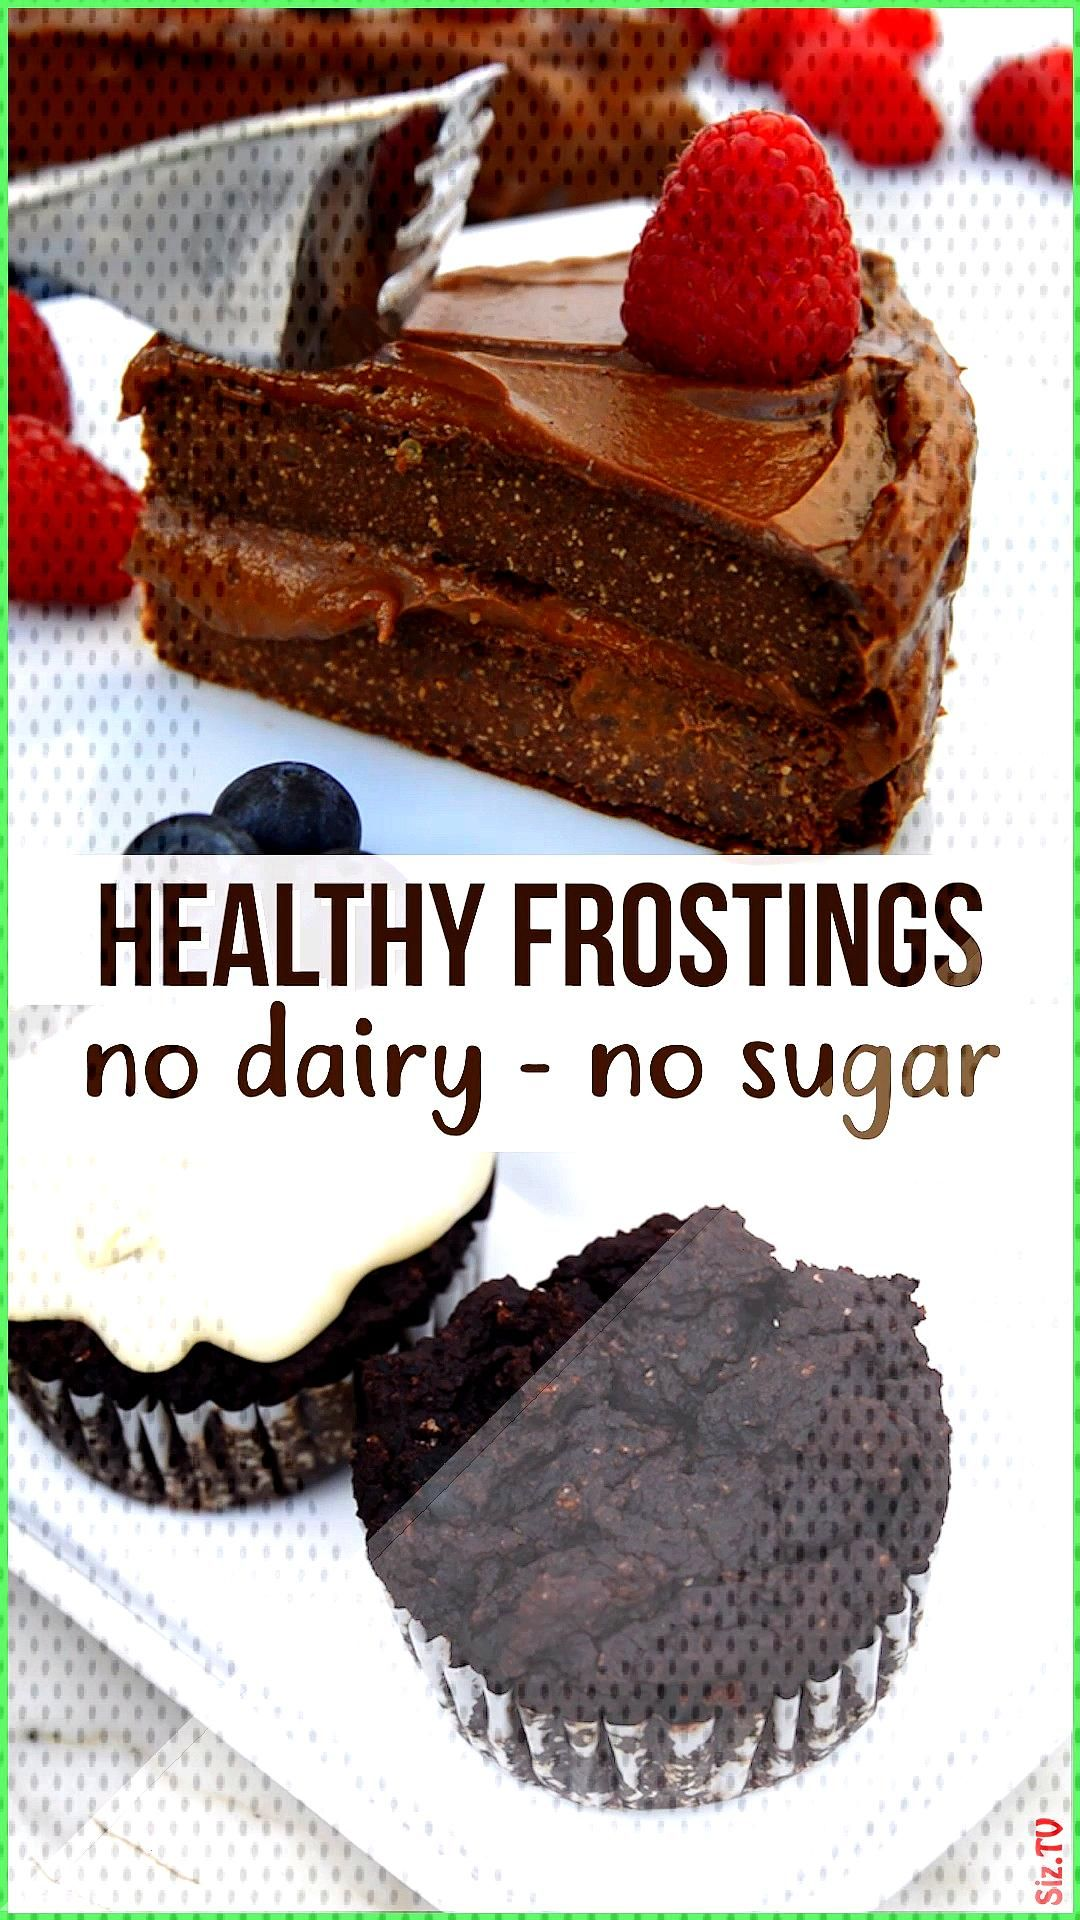 Healthy Frosting Healthy Frosting Nest and Glow nestandglow Healthy Recipes Easy to make and health